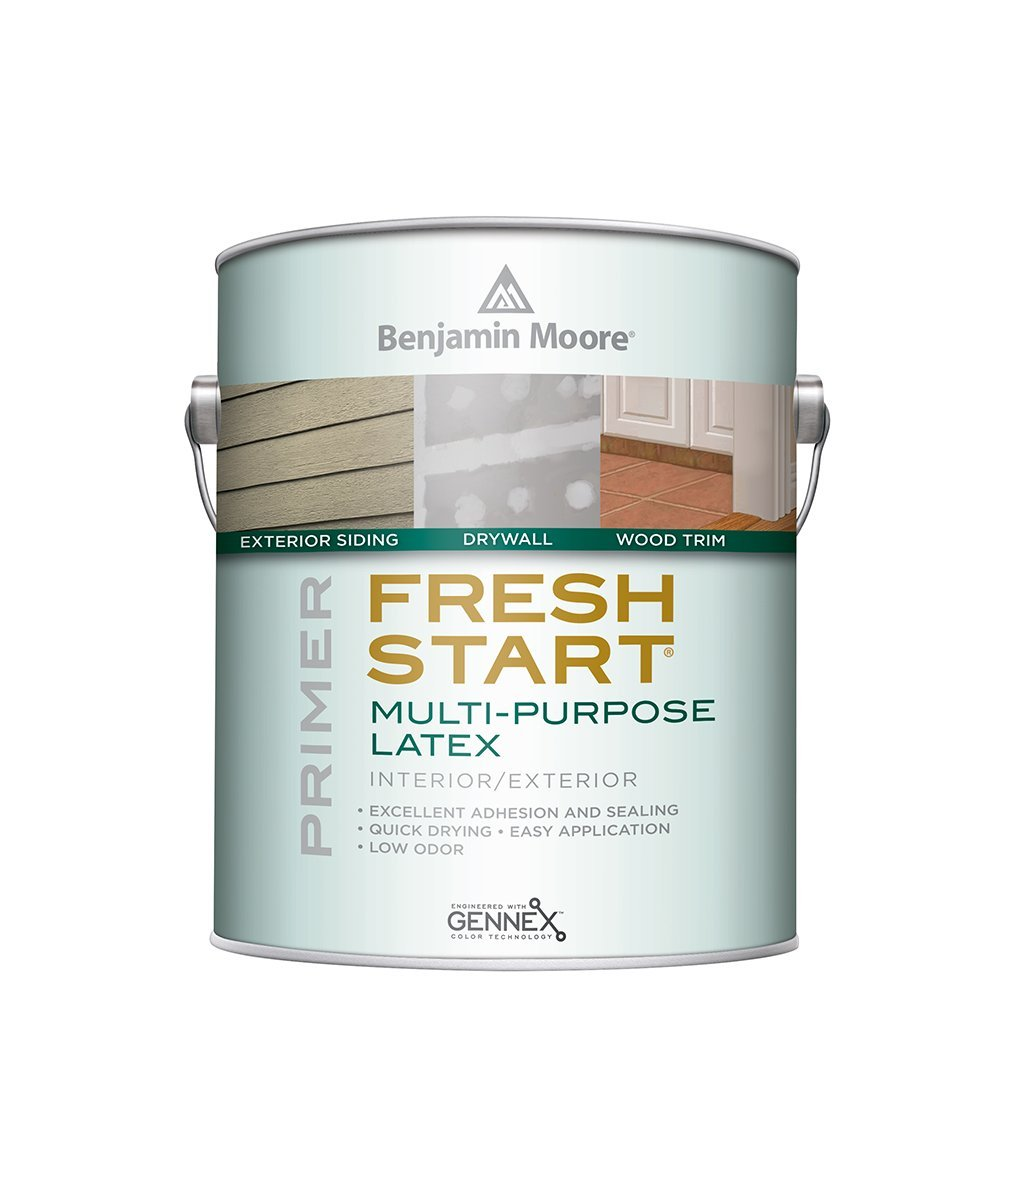 Benjamin Moore Fresh Start multi-purpose latex primer, available at Mallory Paint Stores.